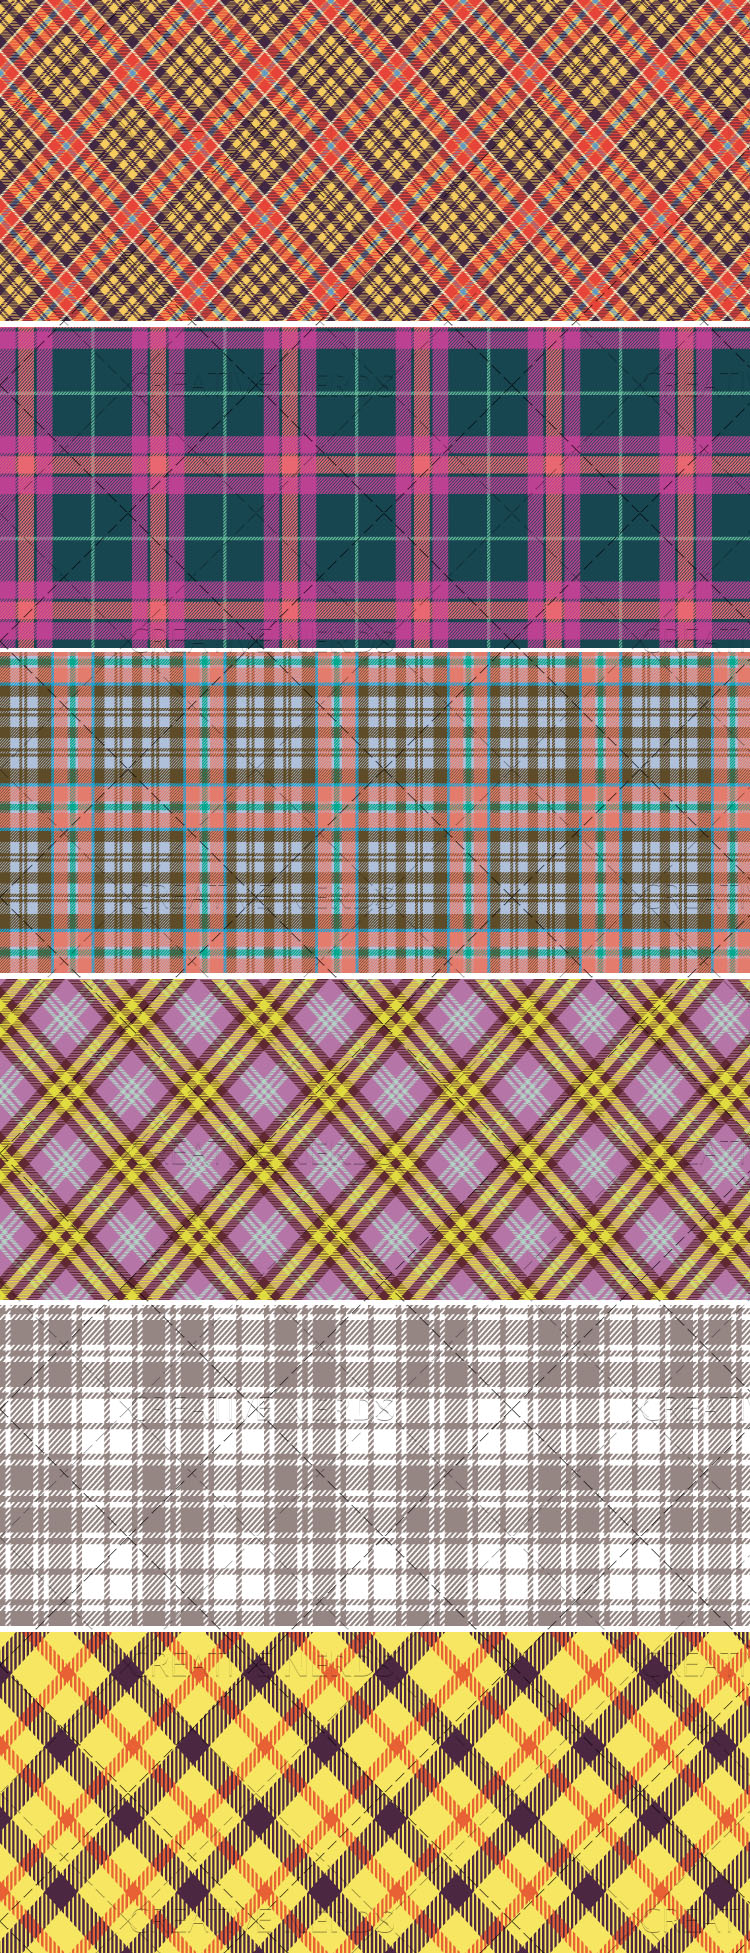 2plaid seamless vector pattern set Creative Nerds 6 Plaid seamless vector patterns